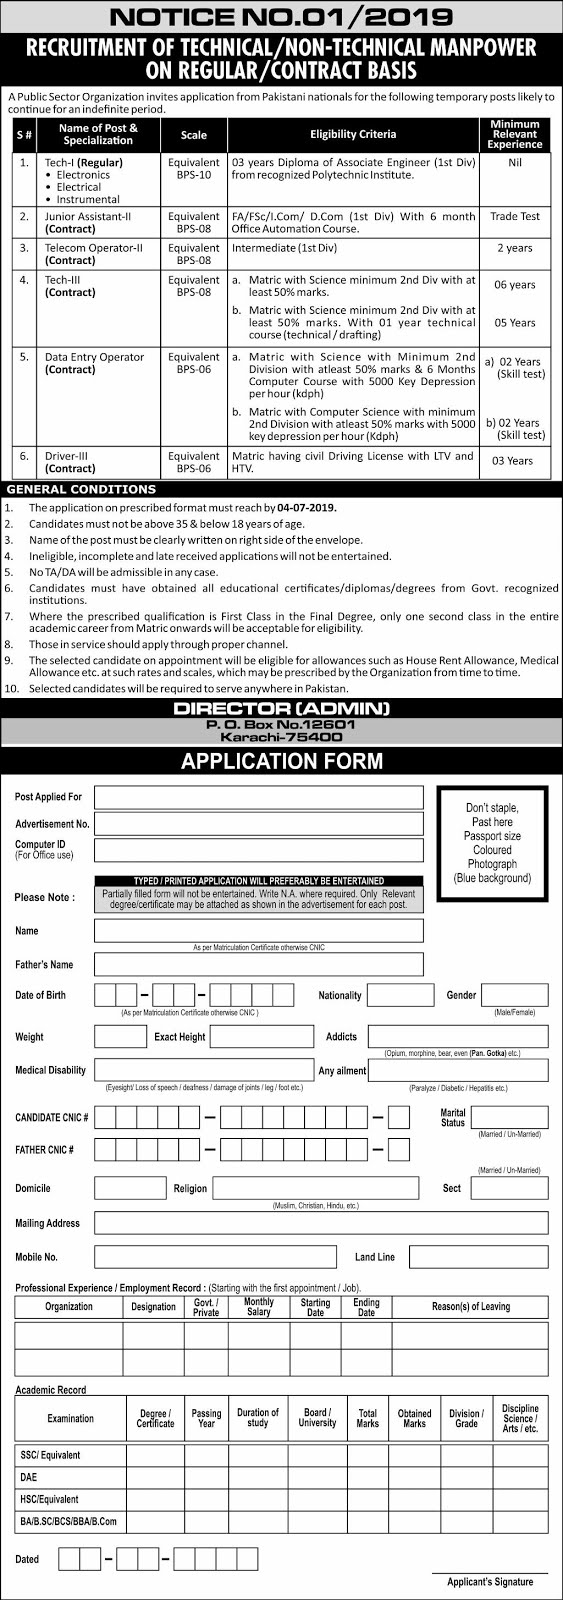 Pakistan Atomic Energy Commission PAEC Jobs For Tech I, Tech III and Others Jobs 2019